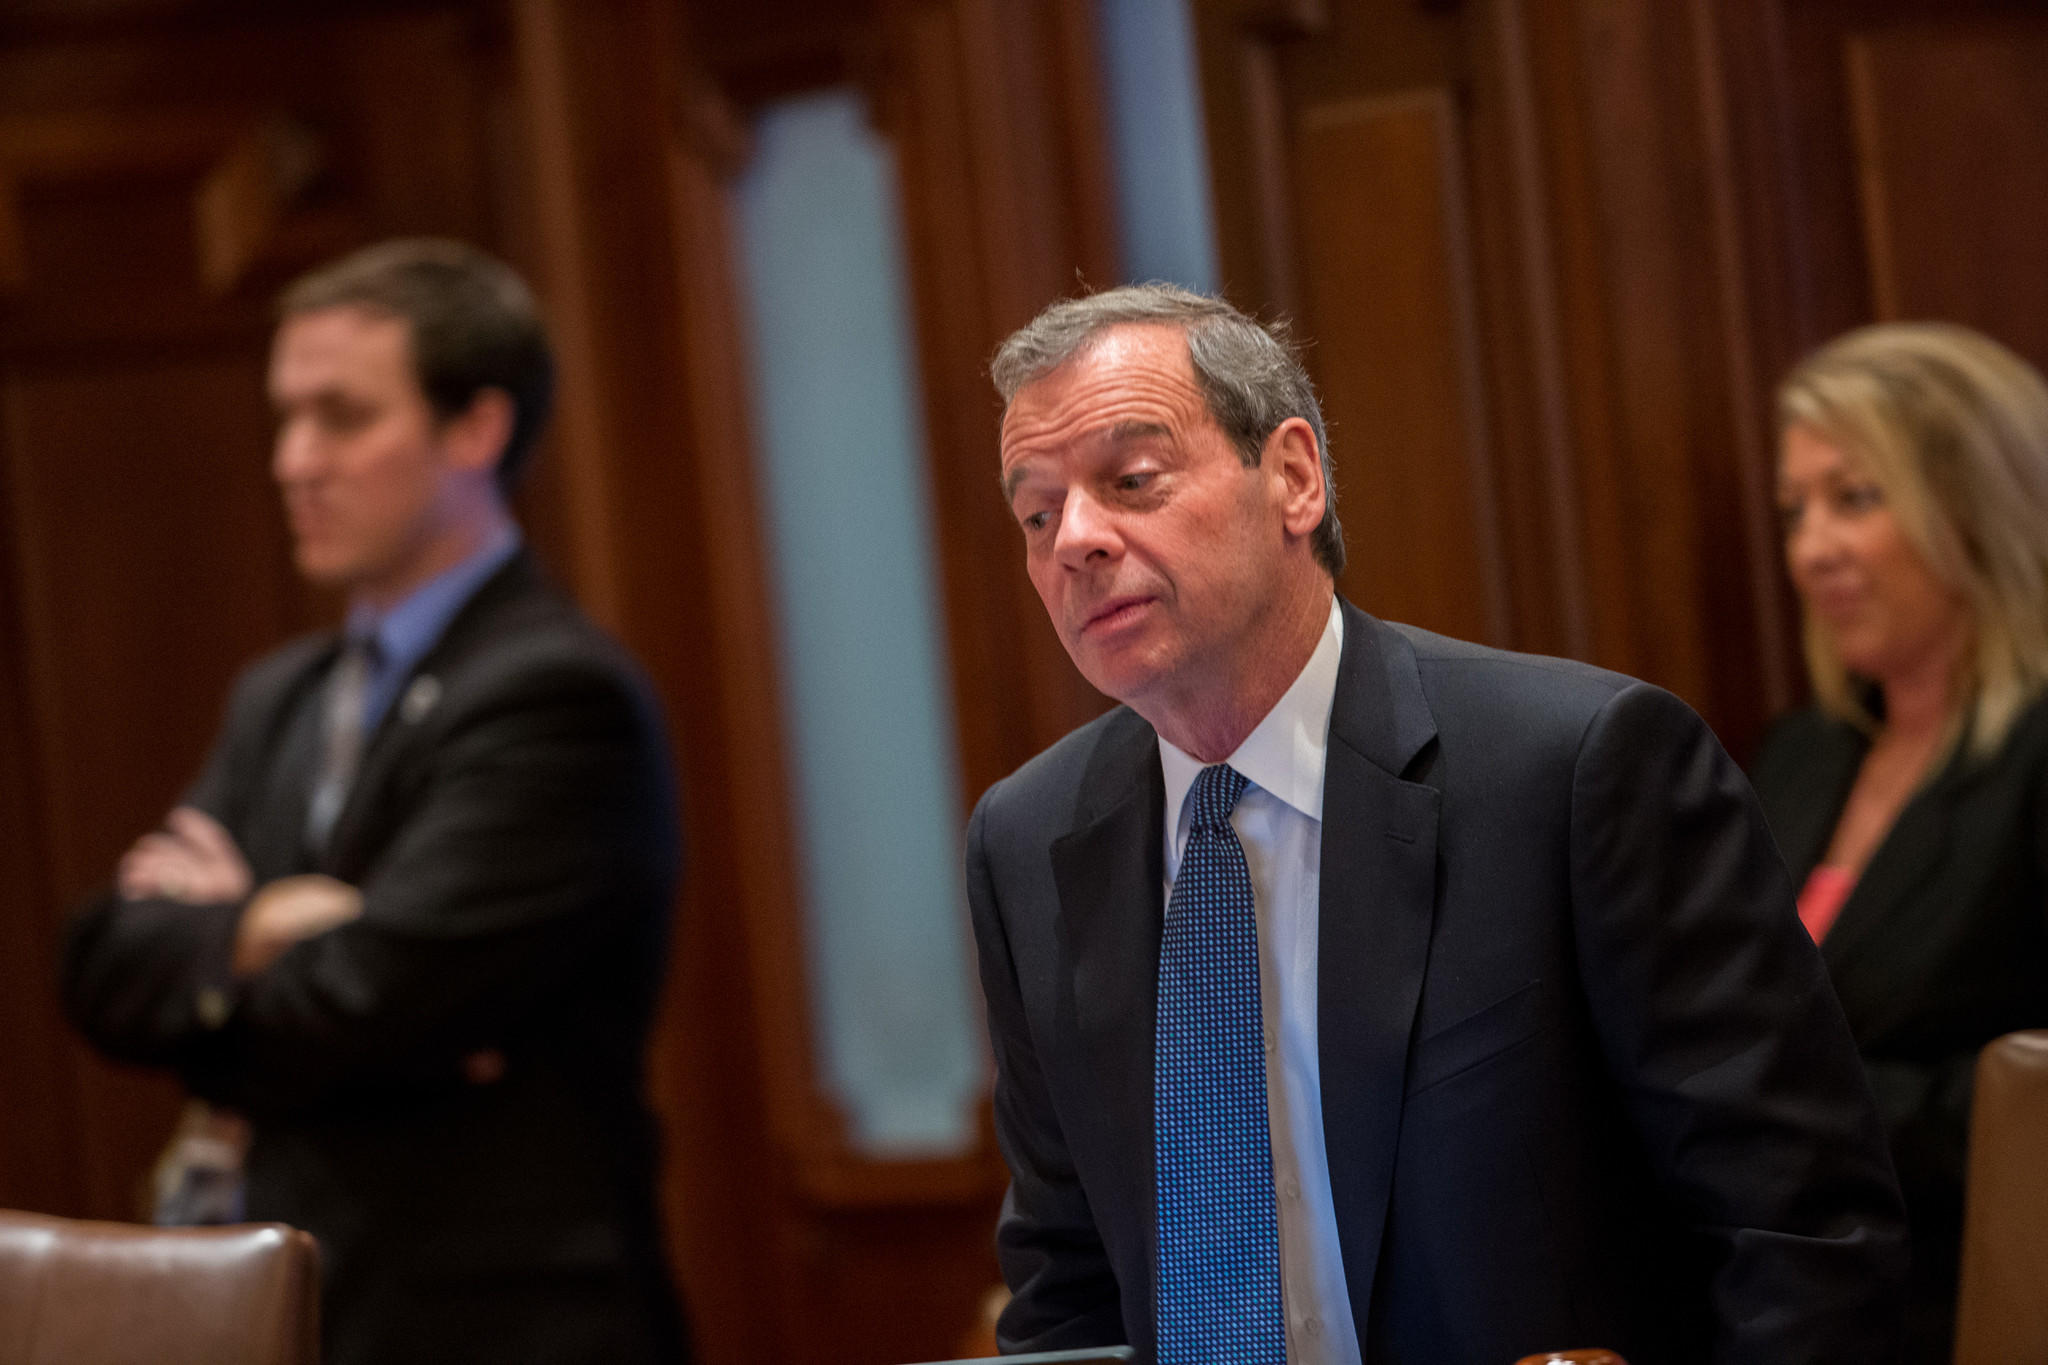 Senate President John Cullerton (D-Chicago), watches as State Senators vote for a major overhaul of the state government worker pension system in Springfield on Tuesday, December 3, 2013.